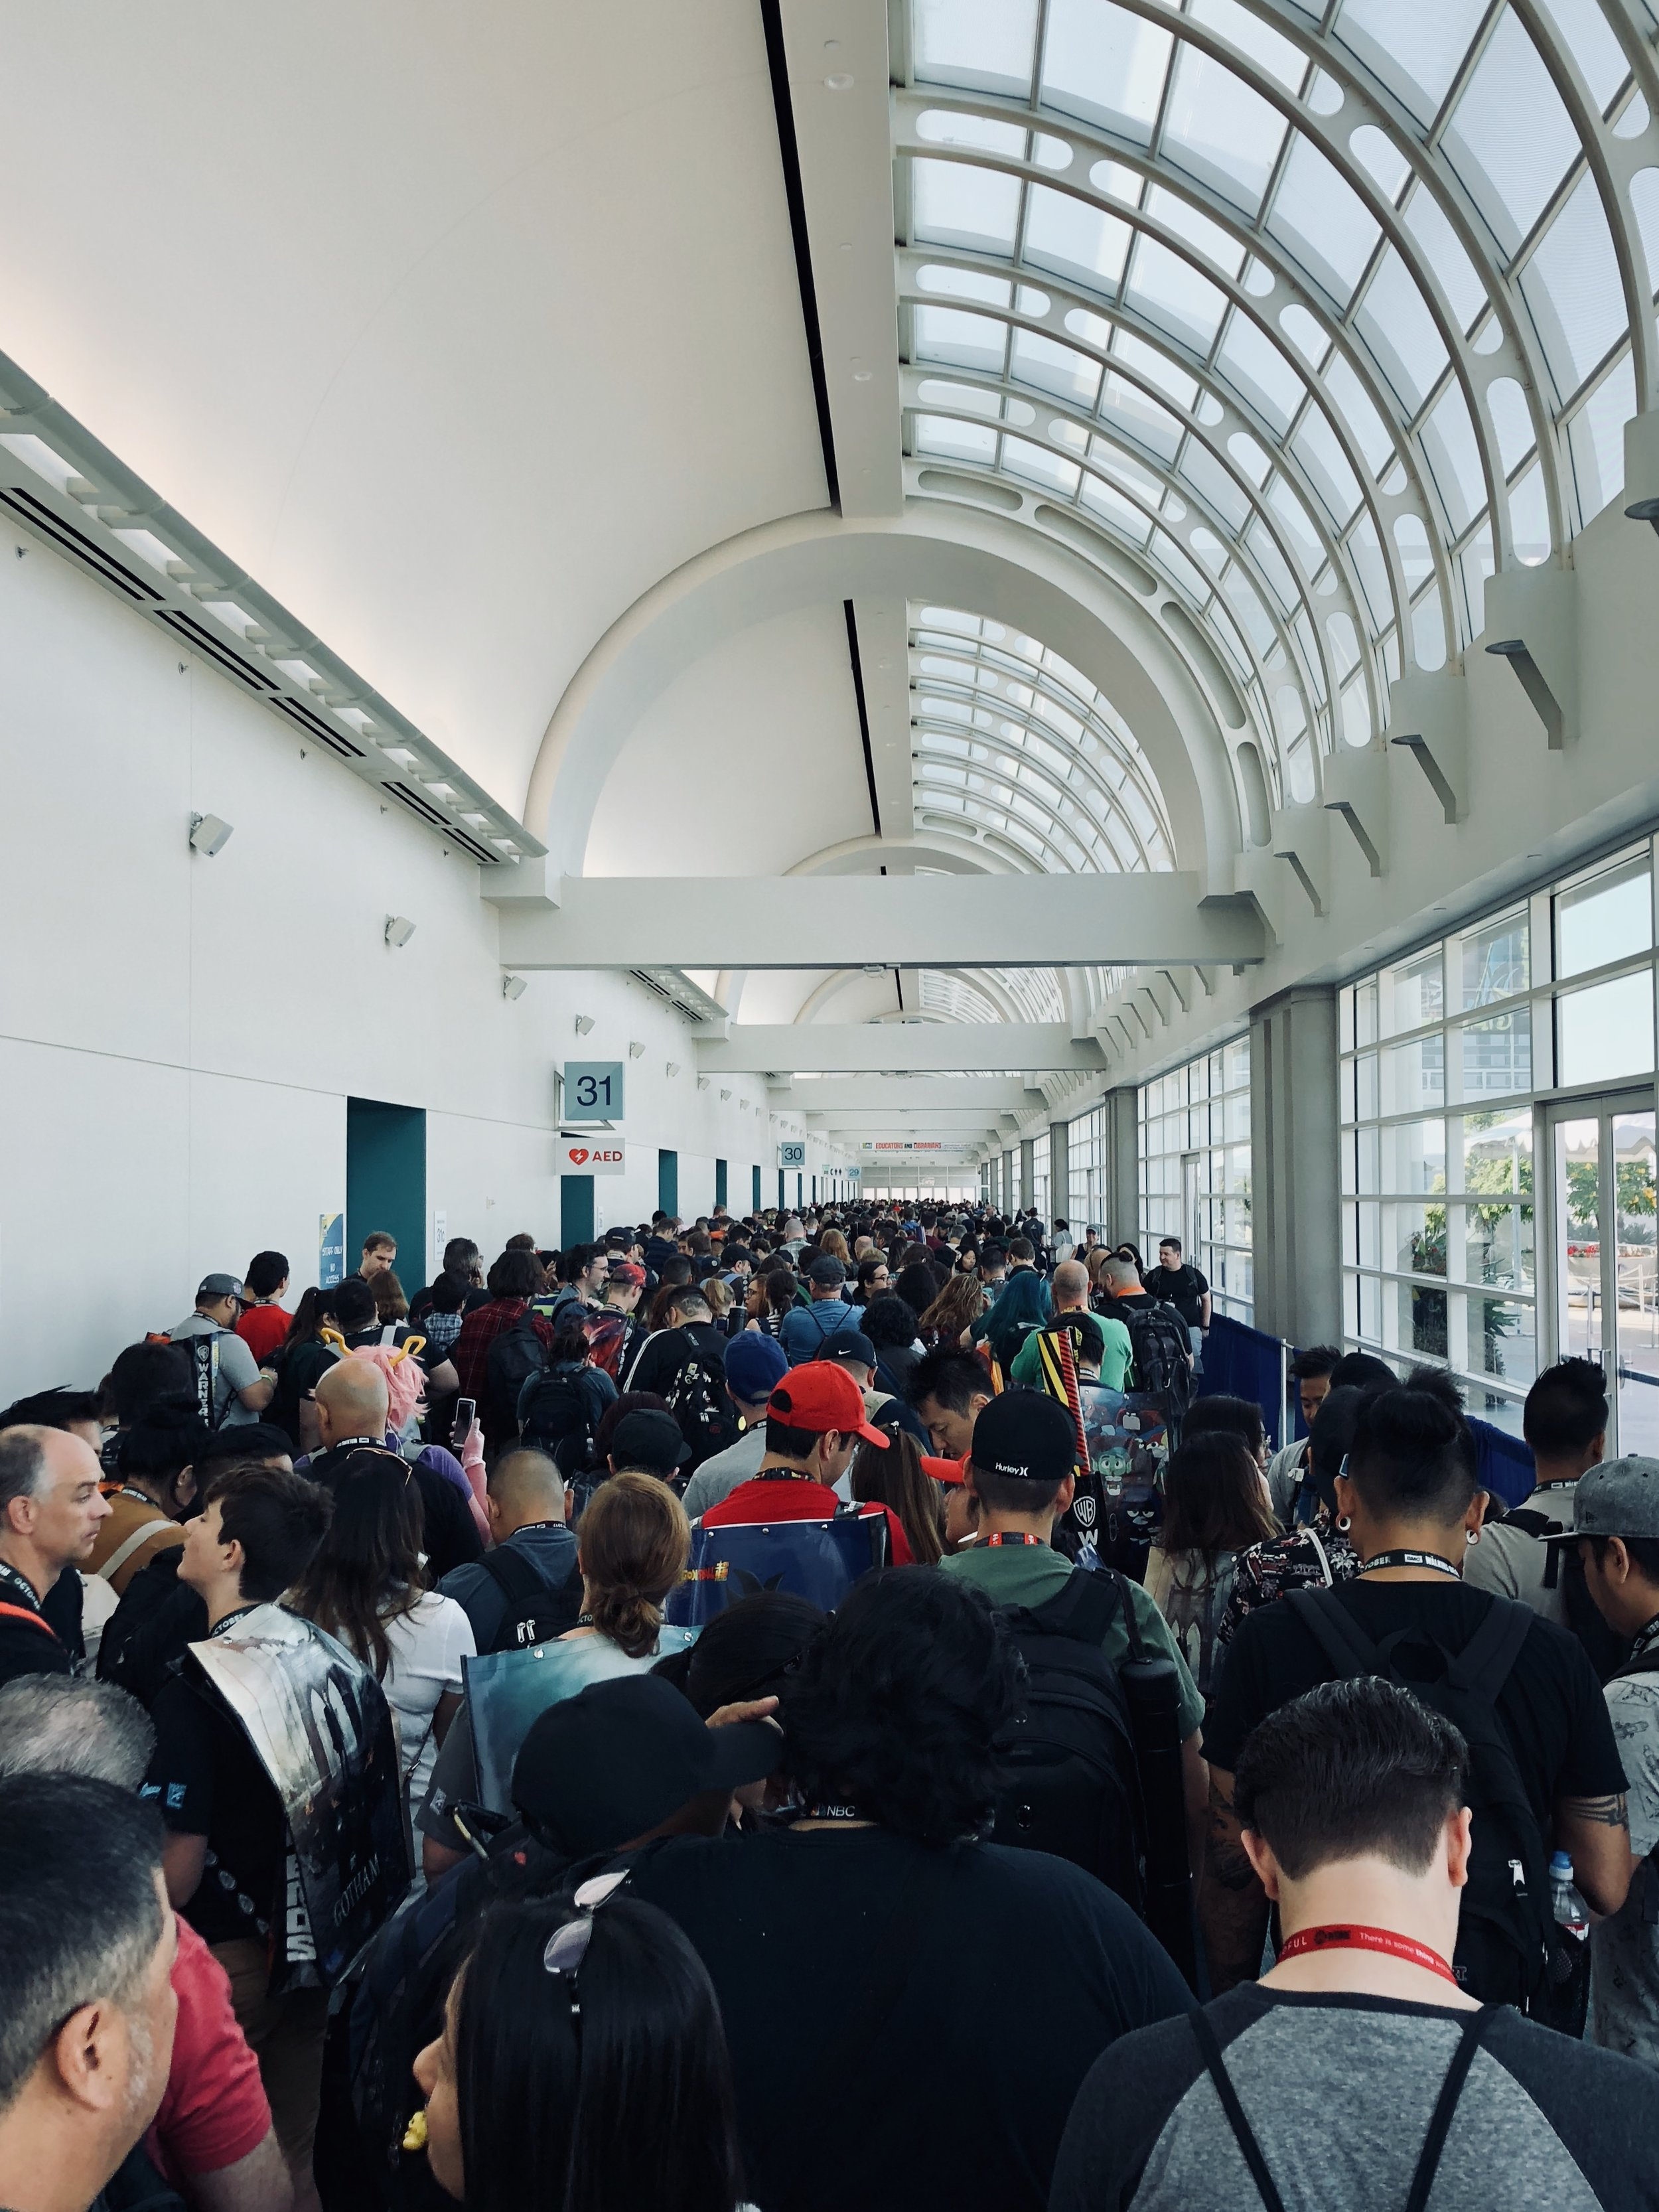 """Waiting in lines is apparently the thing you do most. It's not uncommon to hear someone ask, """"So what are you in line for?"""" This was the line to get into the exhibit hall first thing in the morning."""